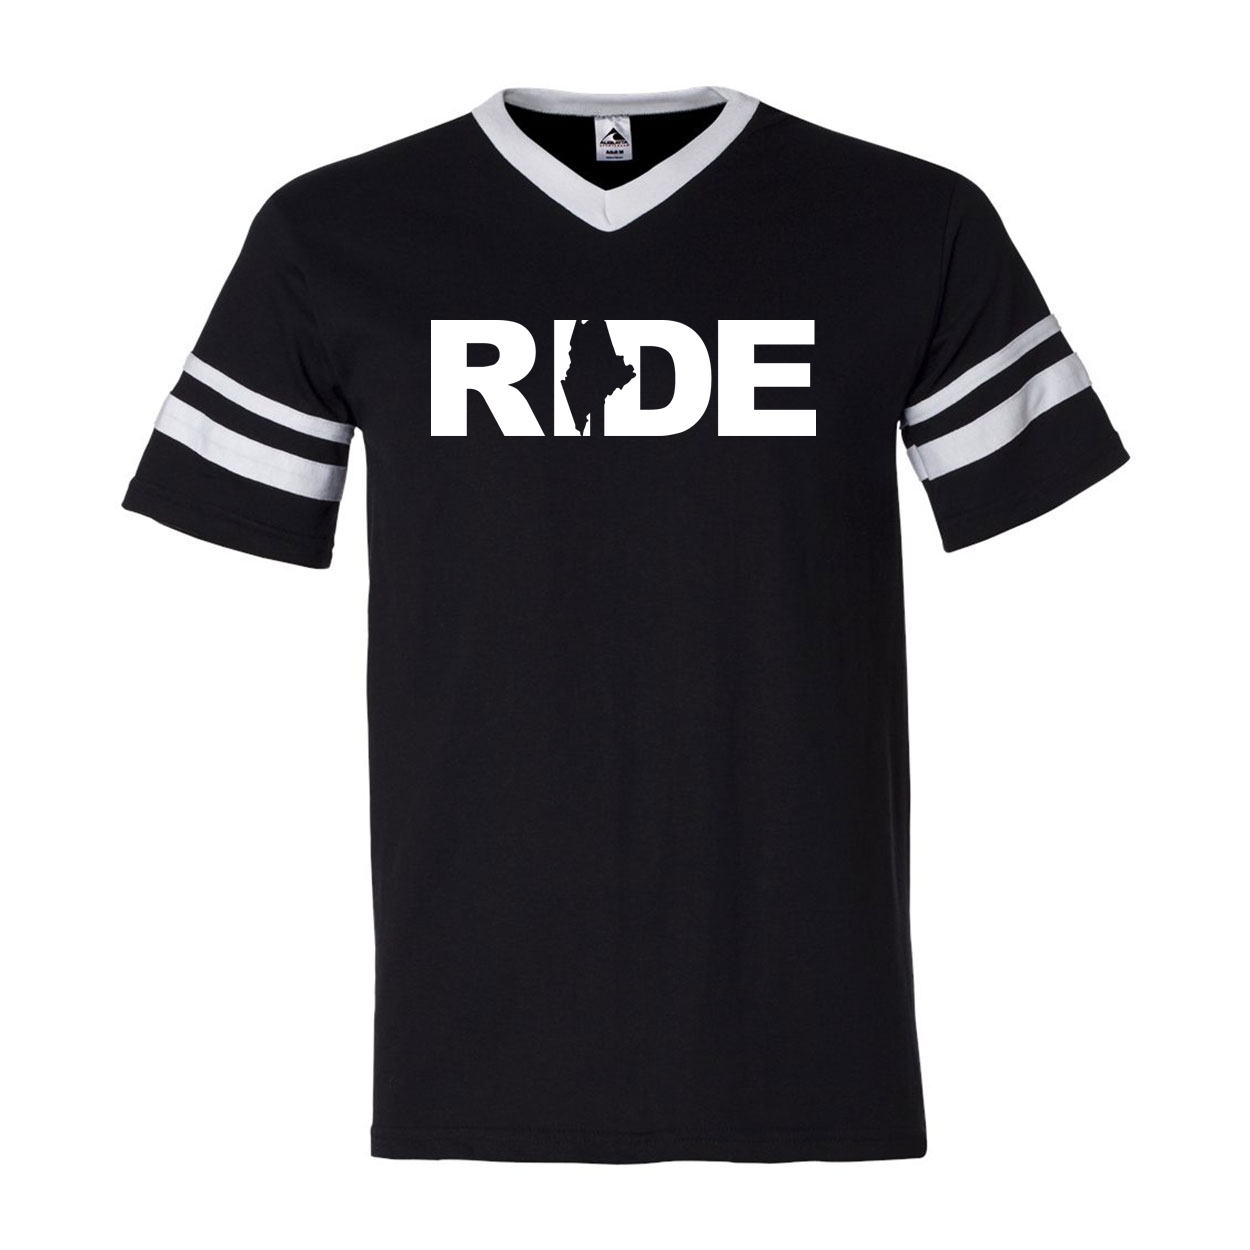 Ride Maine Classic Premium Striped Jersey T-Shirt Black/White (White Logo)